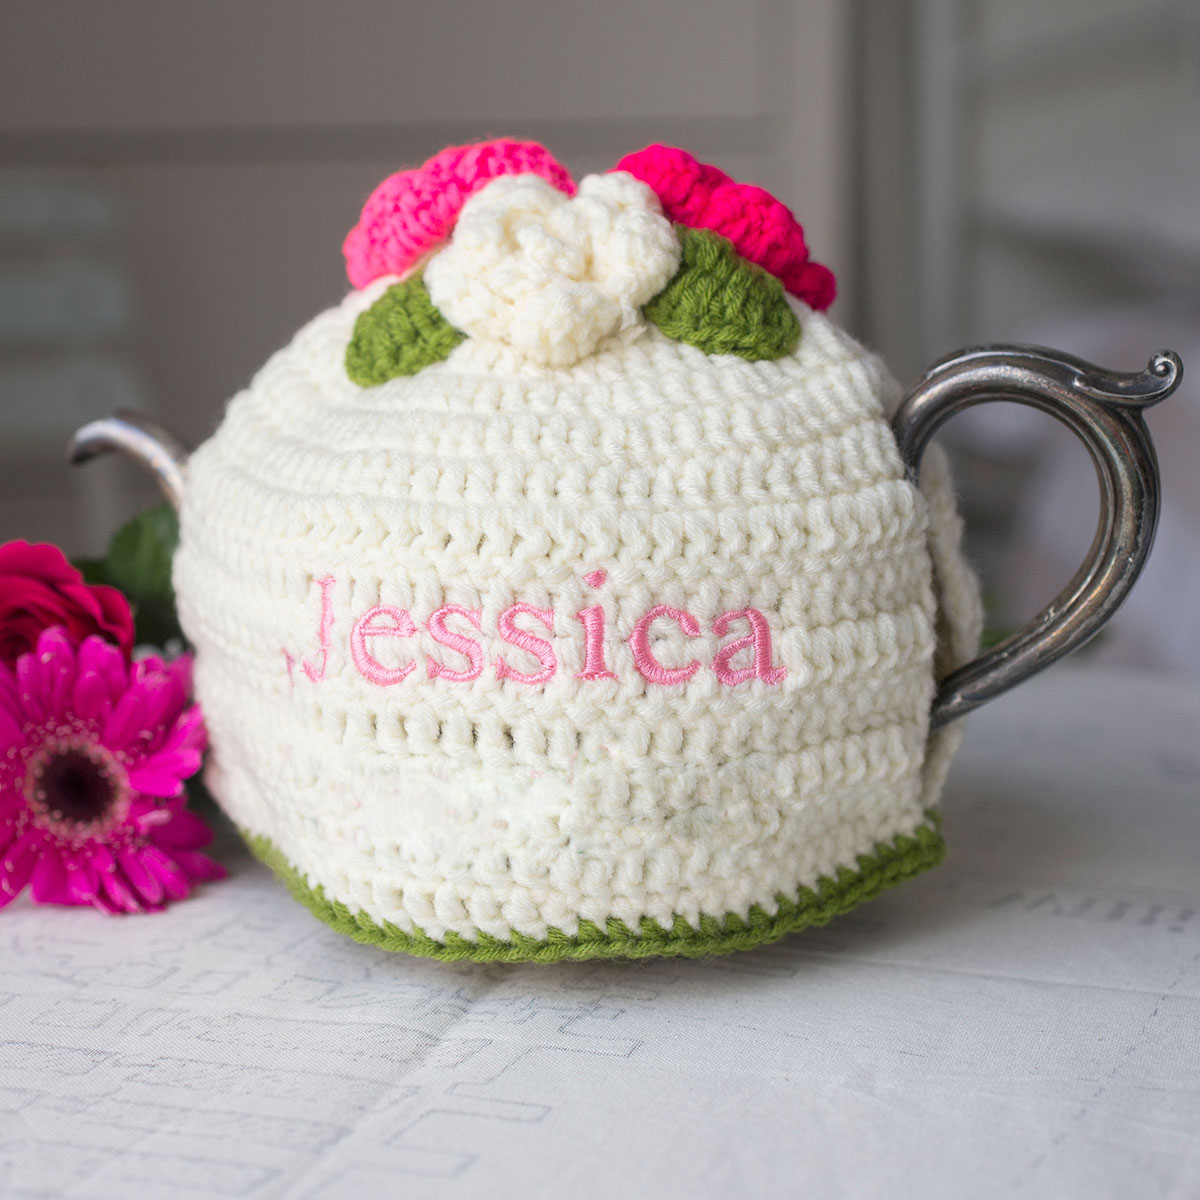 Personalised Crochet Floral Tea Cosy